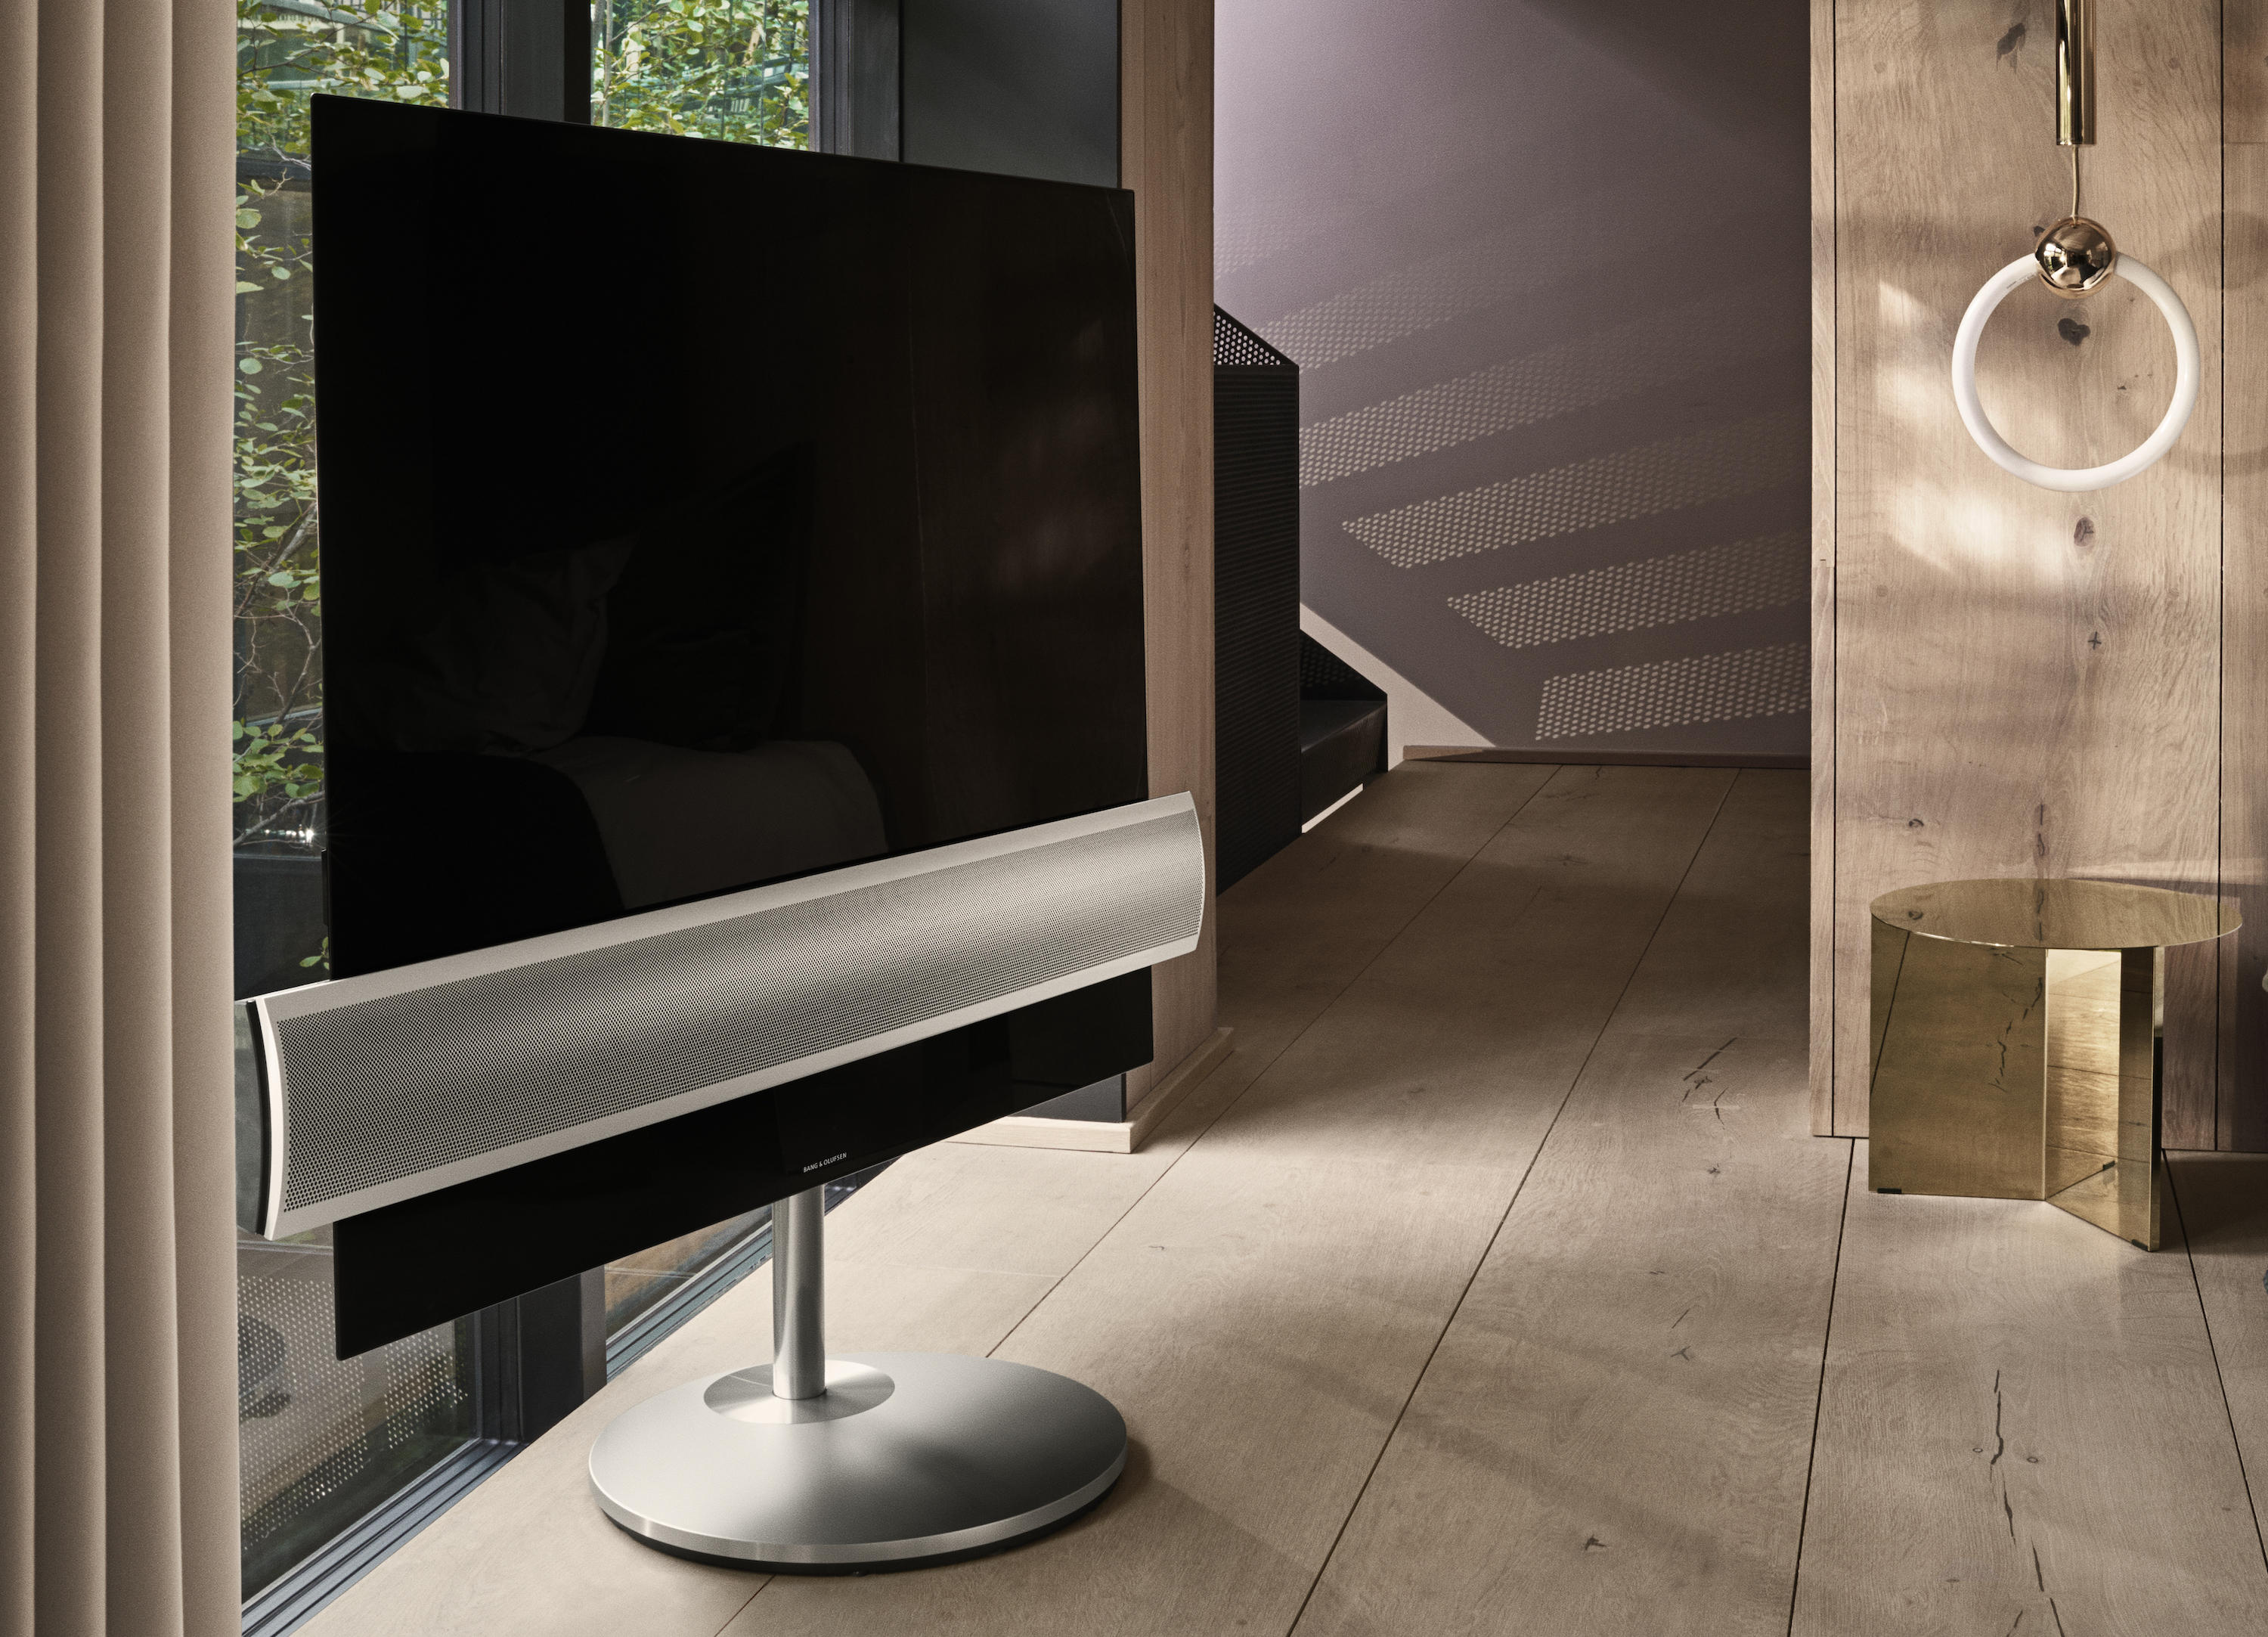 beovision-eclipse-motorized-floorstand-alu-speaker-cover-angle-view-lifestyle-cropped